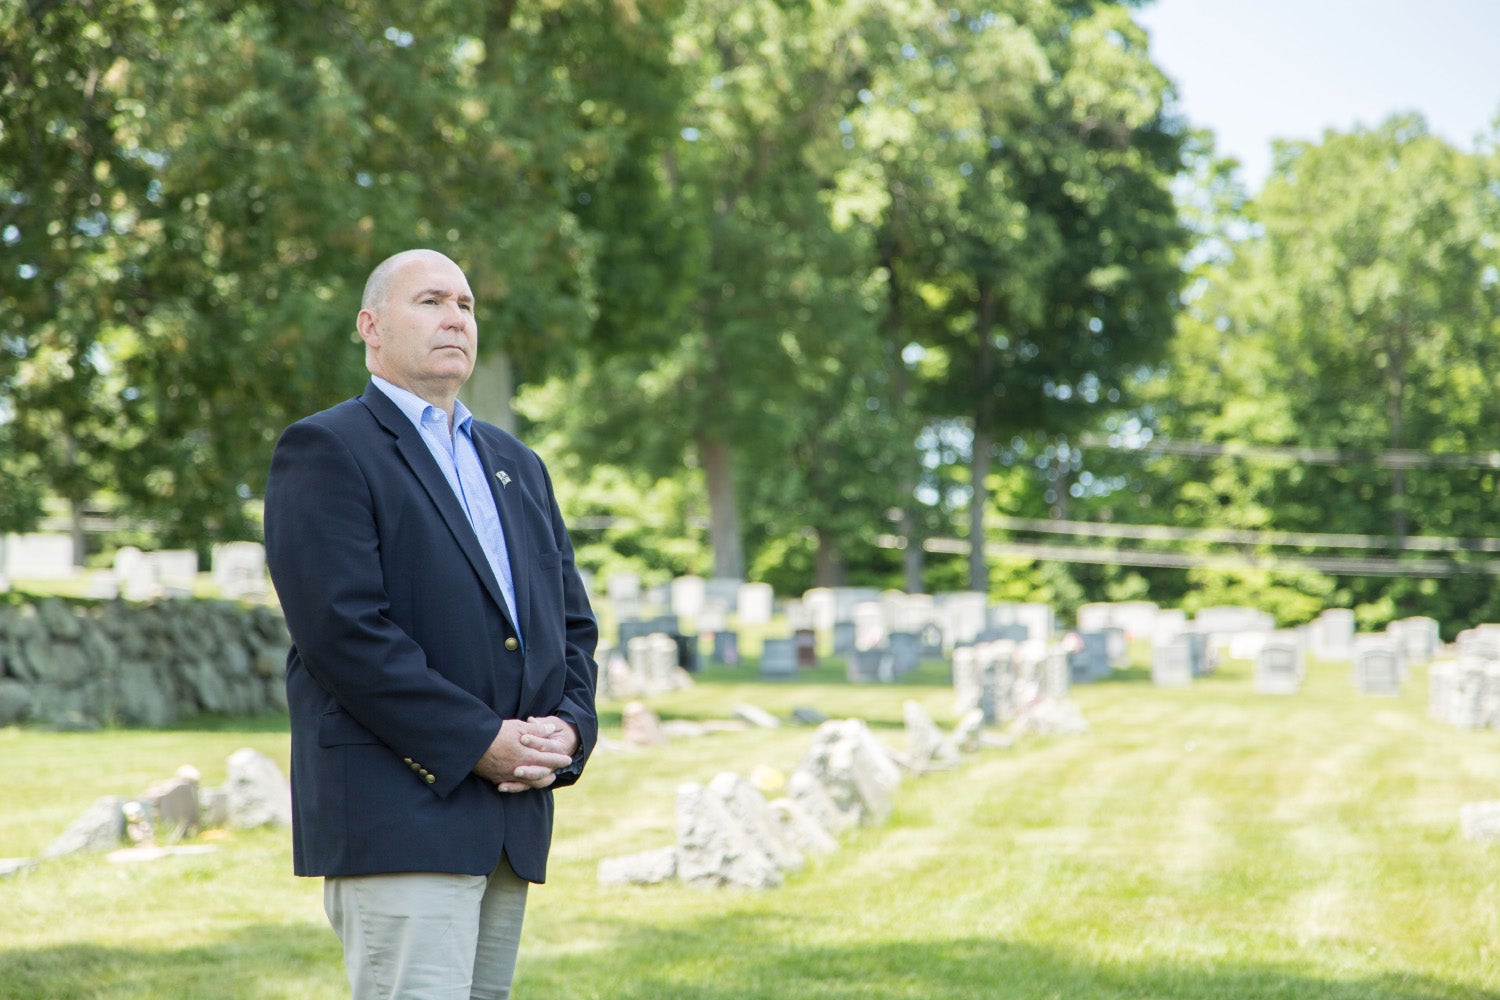 Andrew Schafer serves as the executive director of Catholic cemeteries for the Archdiocese of Newark. The Archdiocese sued the Christie administration over a new law the Archdiocese argues infringes upon its economic liberty, as the law prohibits the Archdiocese from selling headstones to its parishioners. (Photo: Institute for Justice)